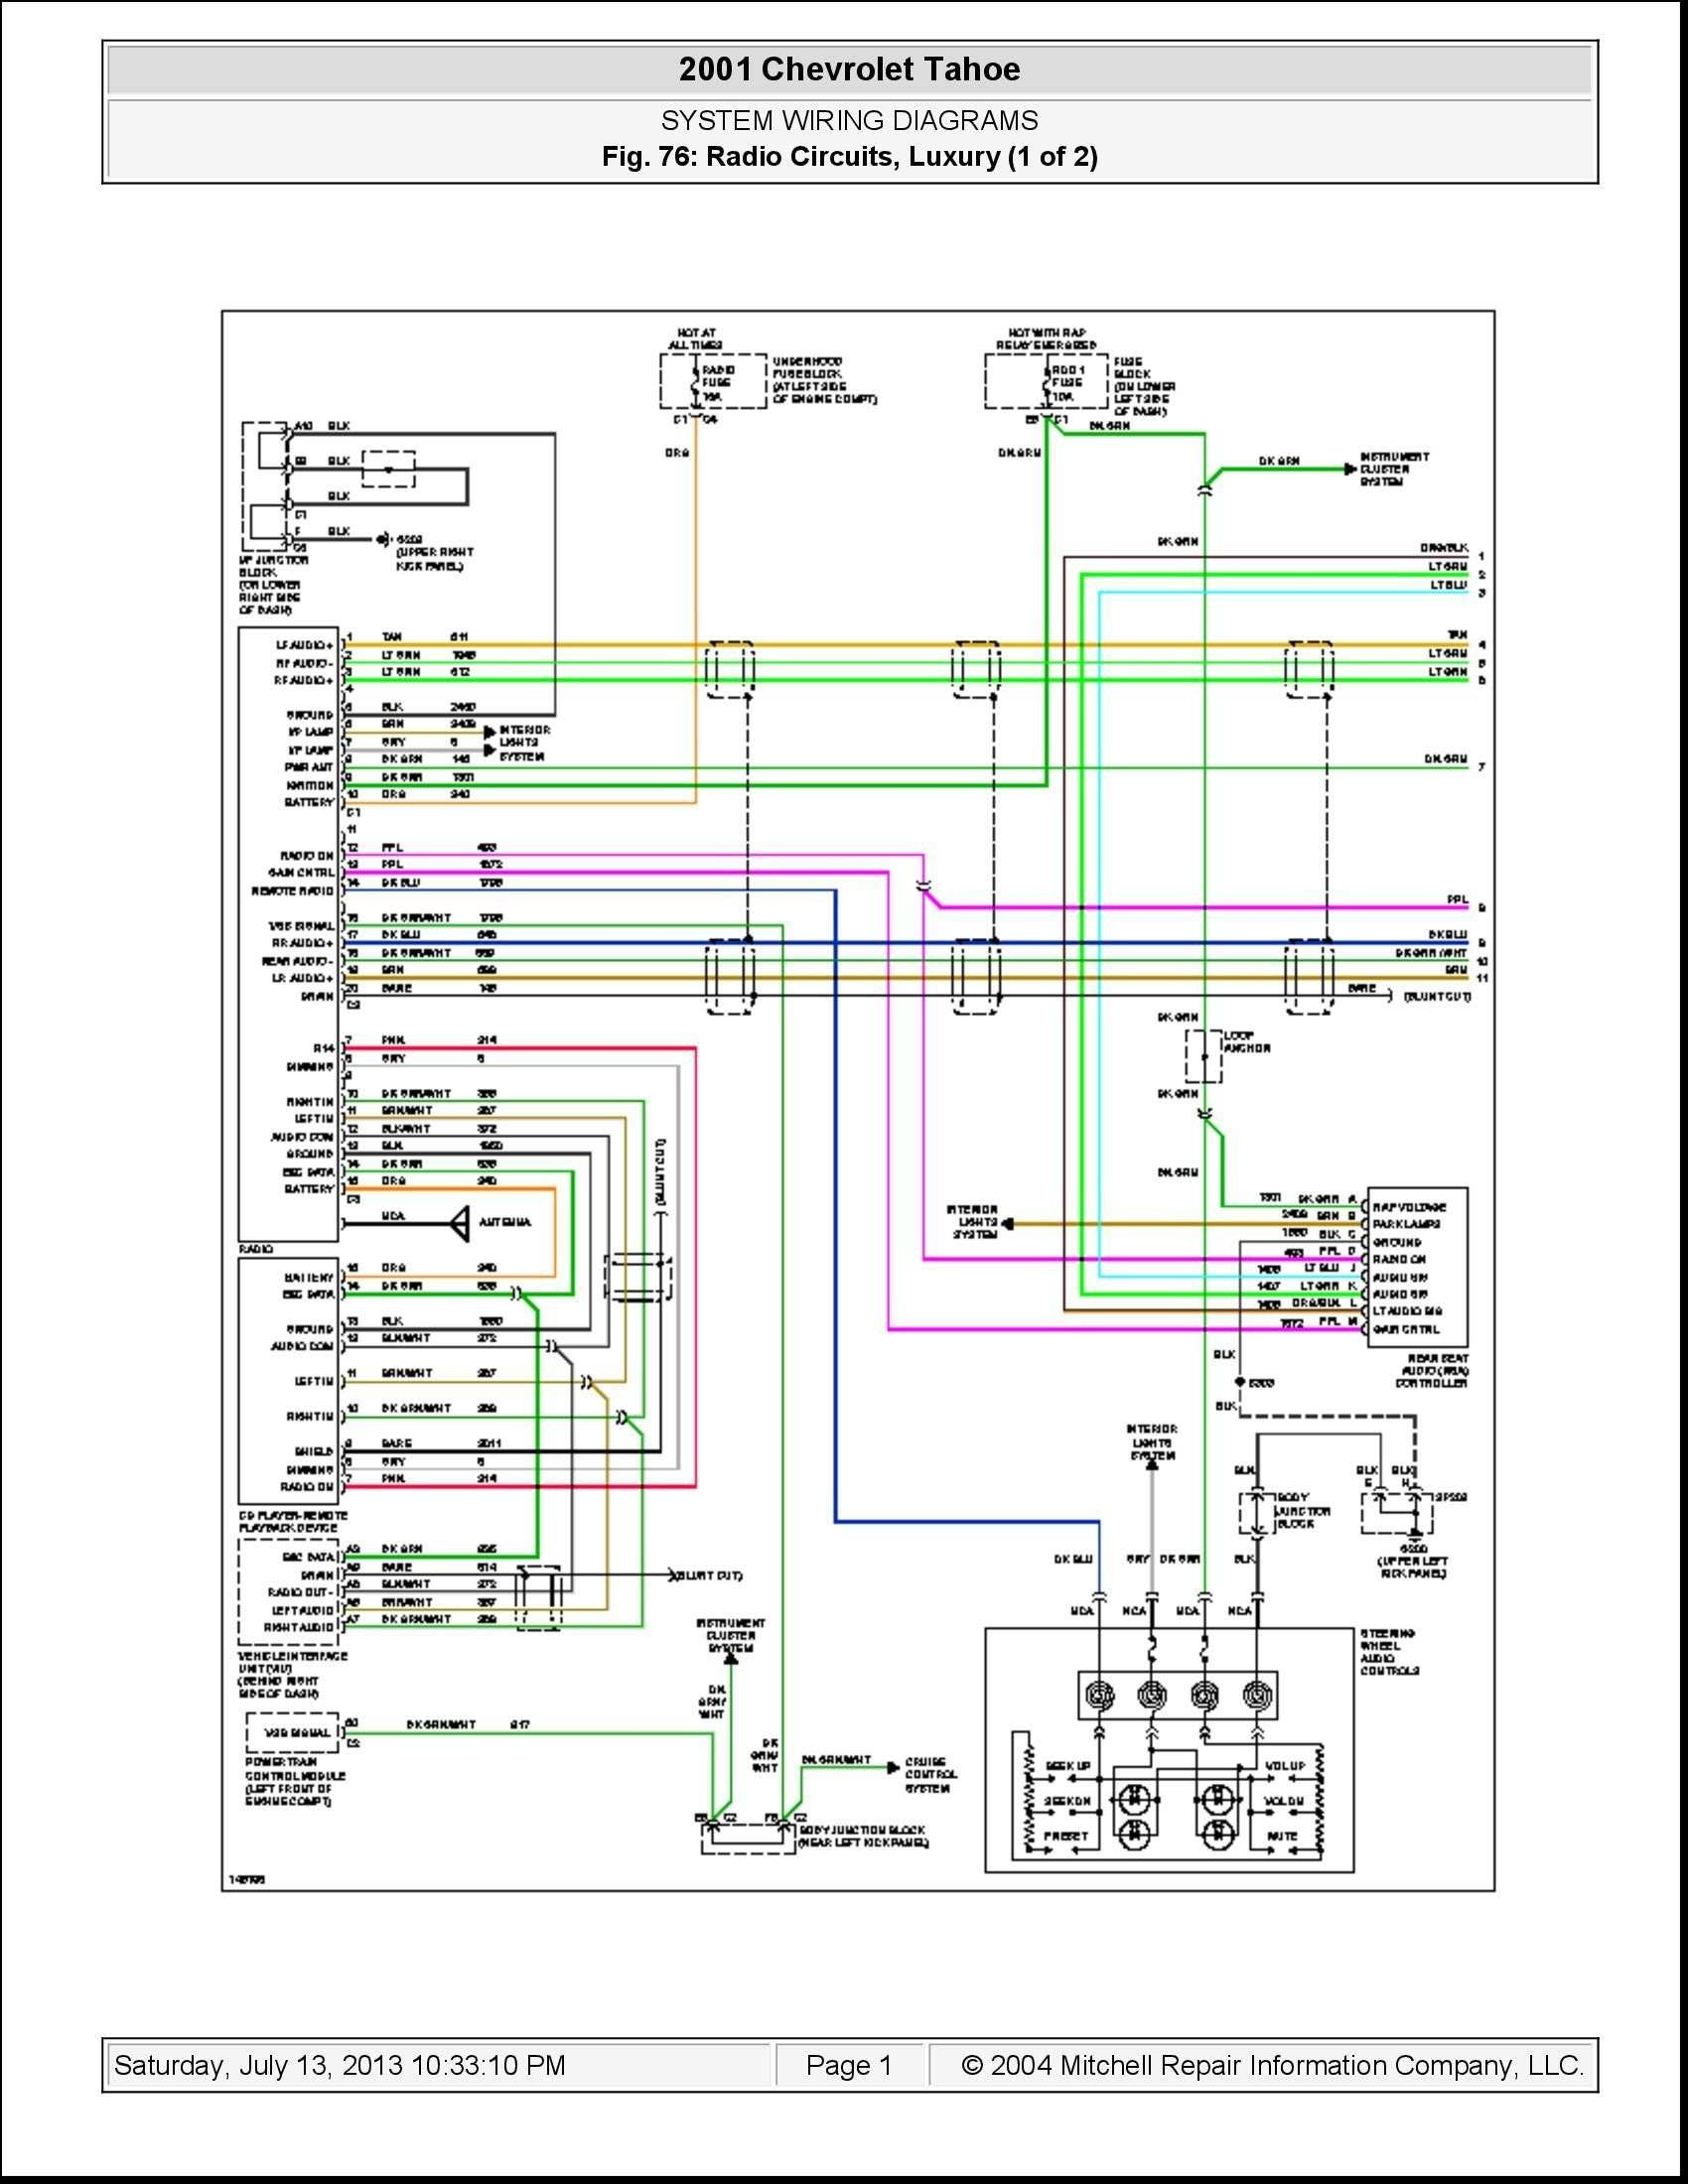 2005 tahoe wiring diagrams automotive wiring diagram library u2022 rh seigokanengland co uk 2005 silverado radio wire diagram 2005 silverado radio wire diagram